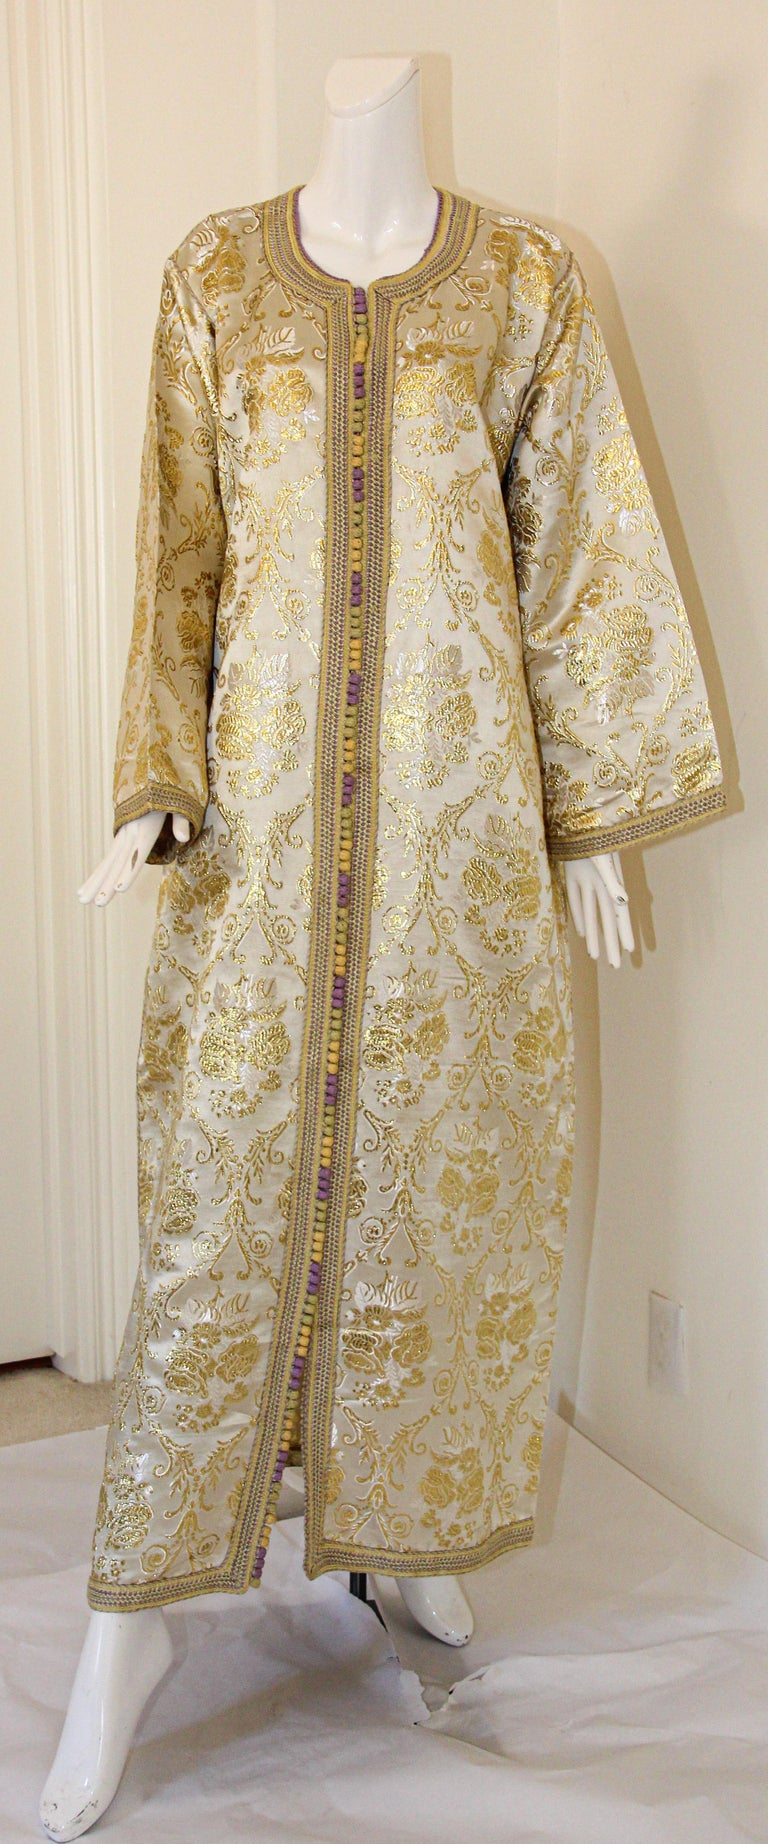 Moroccan vintage gold and silver metallic floral brocade dress kaftan with gold trim. Handmade ceremonial caftan from North Africa, Morocco. Vintage exotic 1970s metallic brocade caftan gown. The luminous cream and gold metallic caftan maxi dress